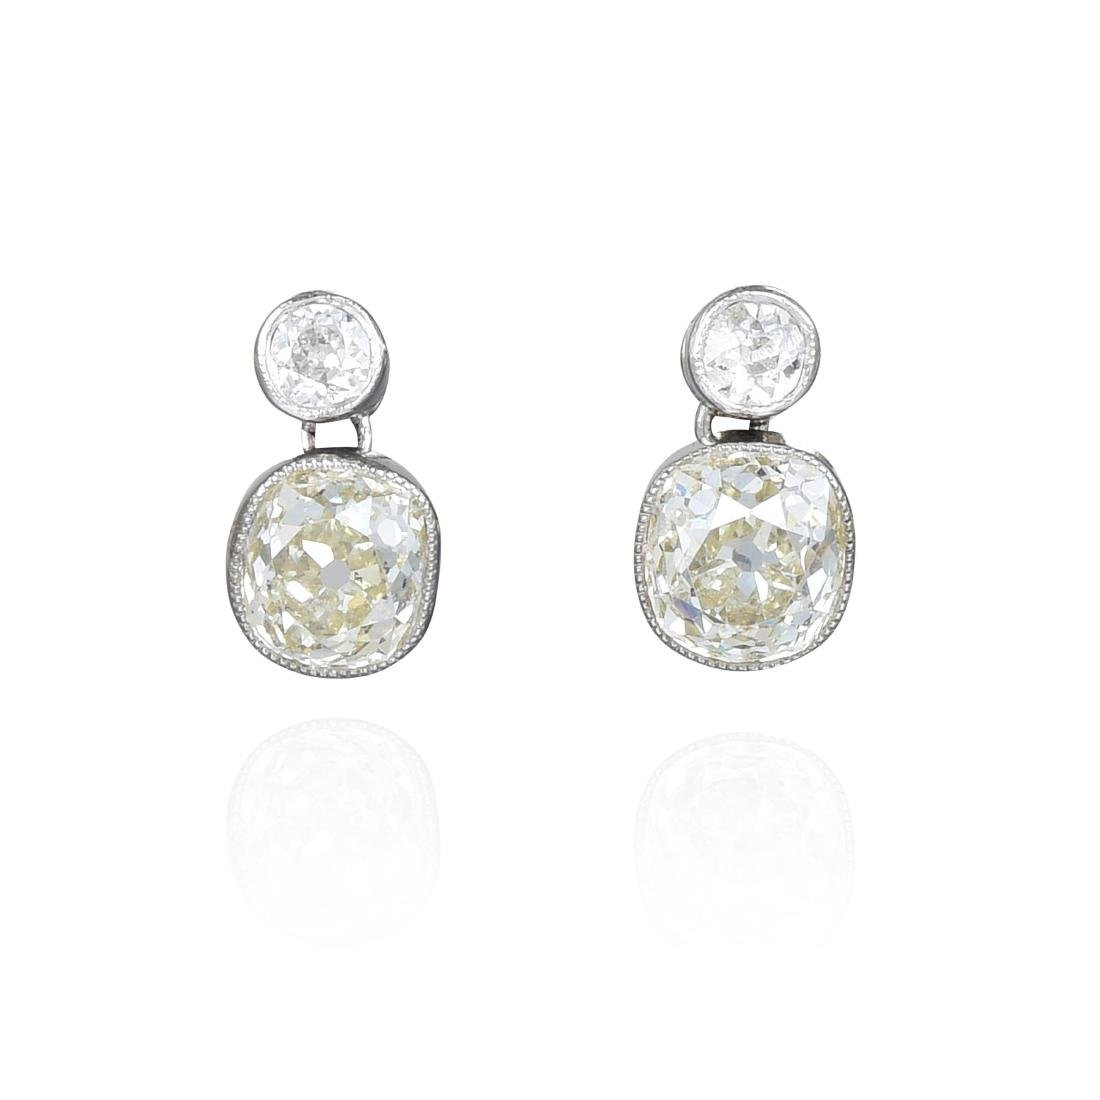 A Pair of Antique Diamond Earrings